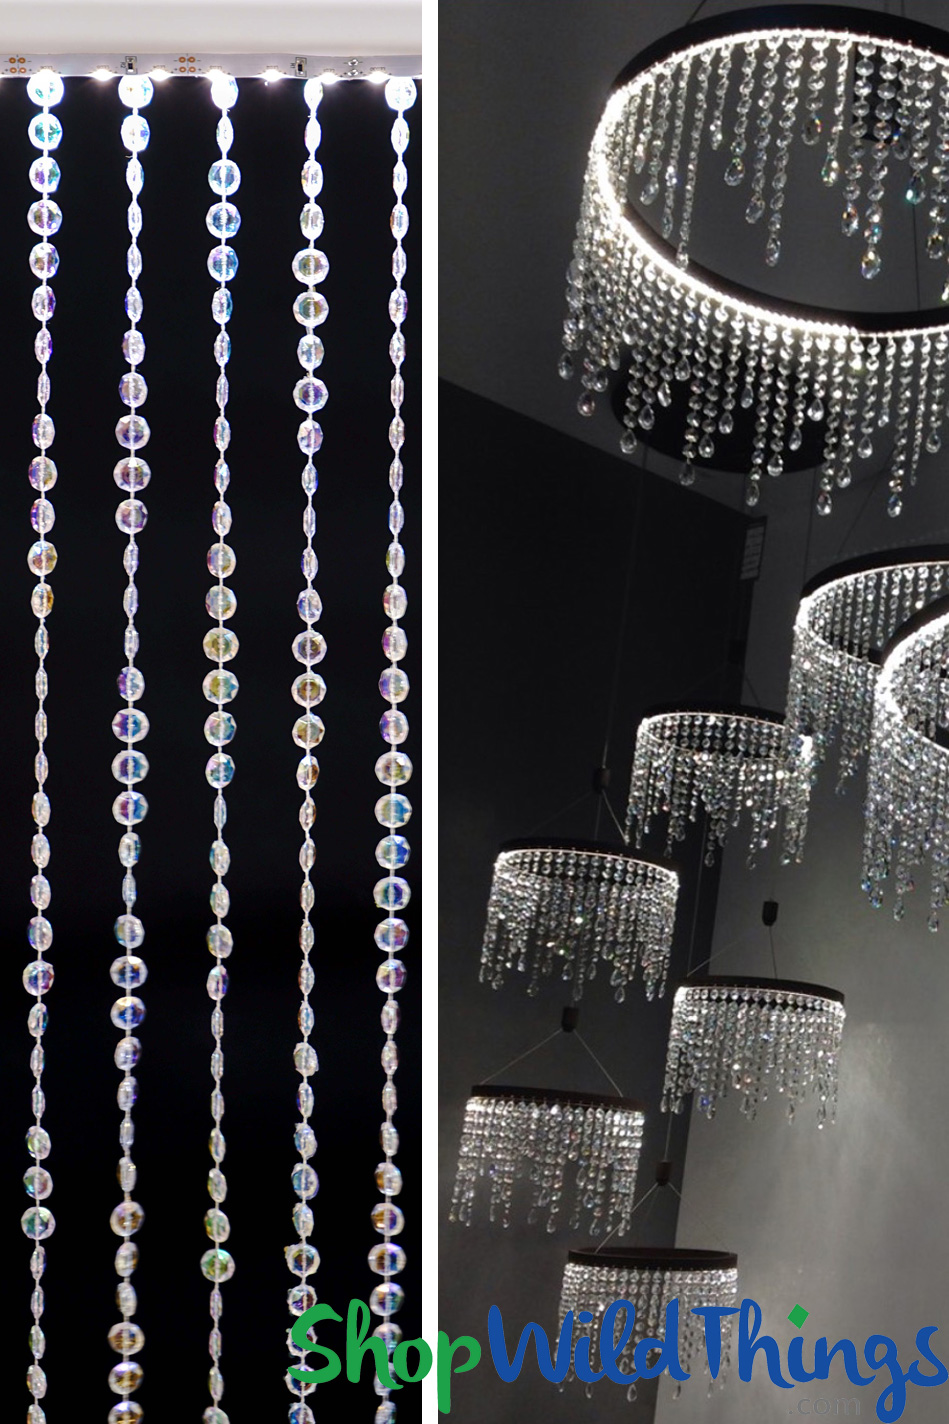 LED Flexible Strip Lighting - Battery Operated & Plug-In Styles